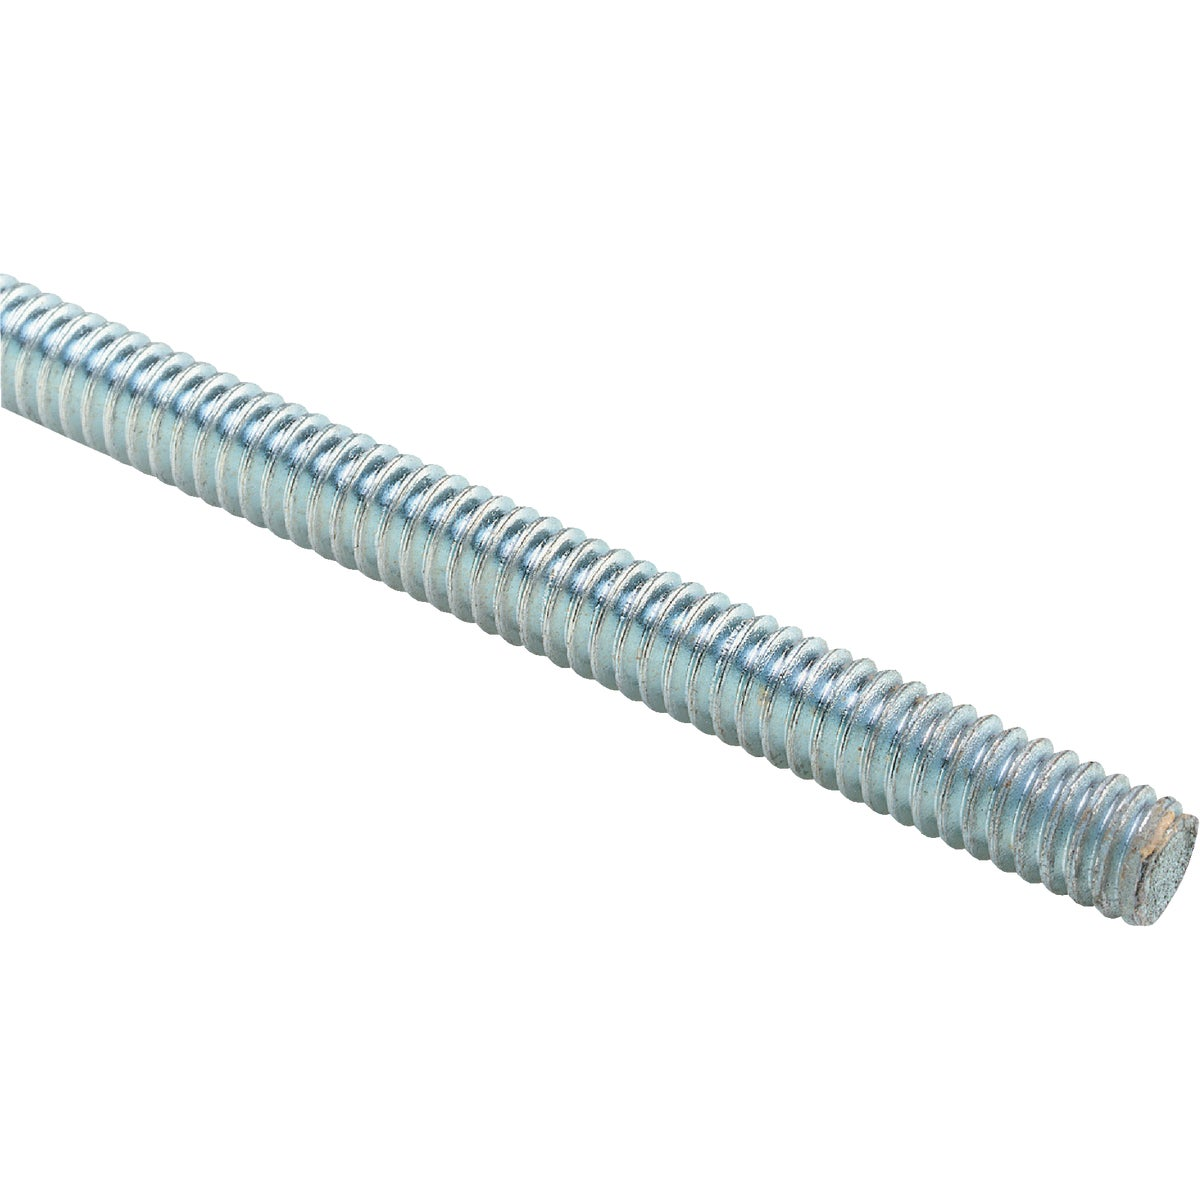 "1/2X13""X10' ROD - ZR1048 by Thomas & Betts"